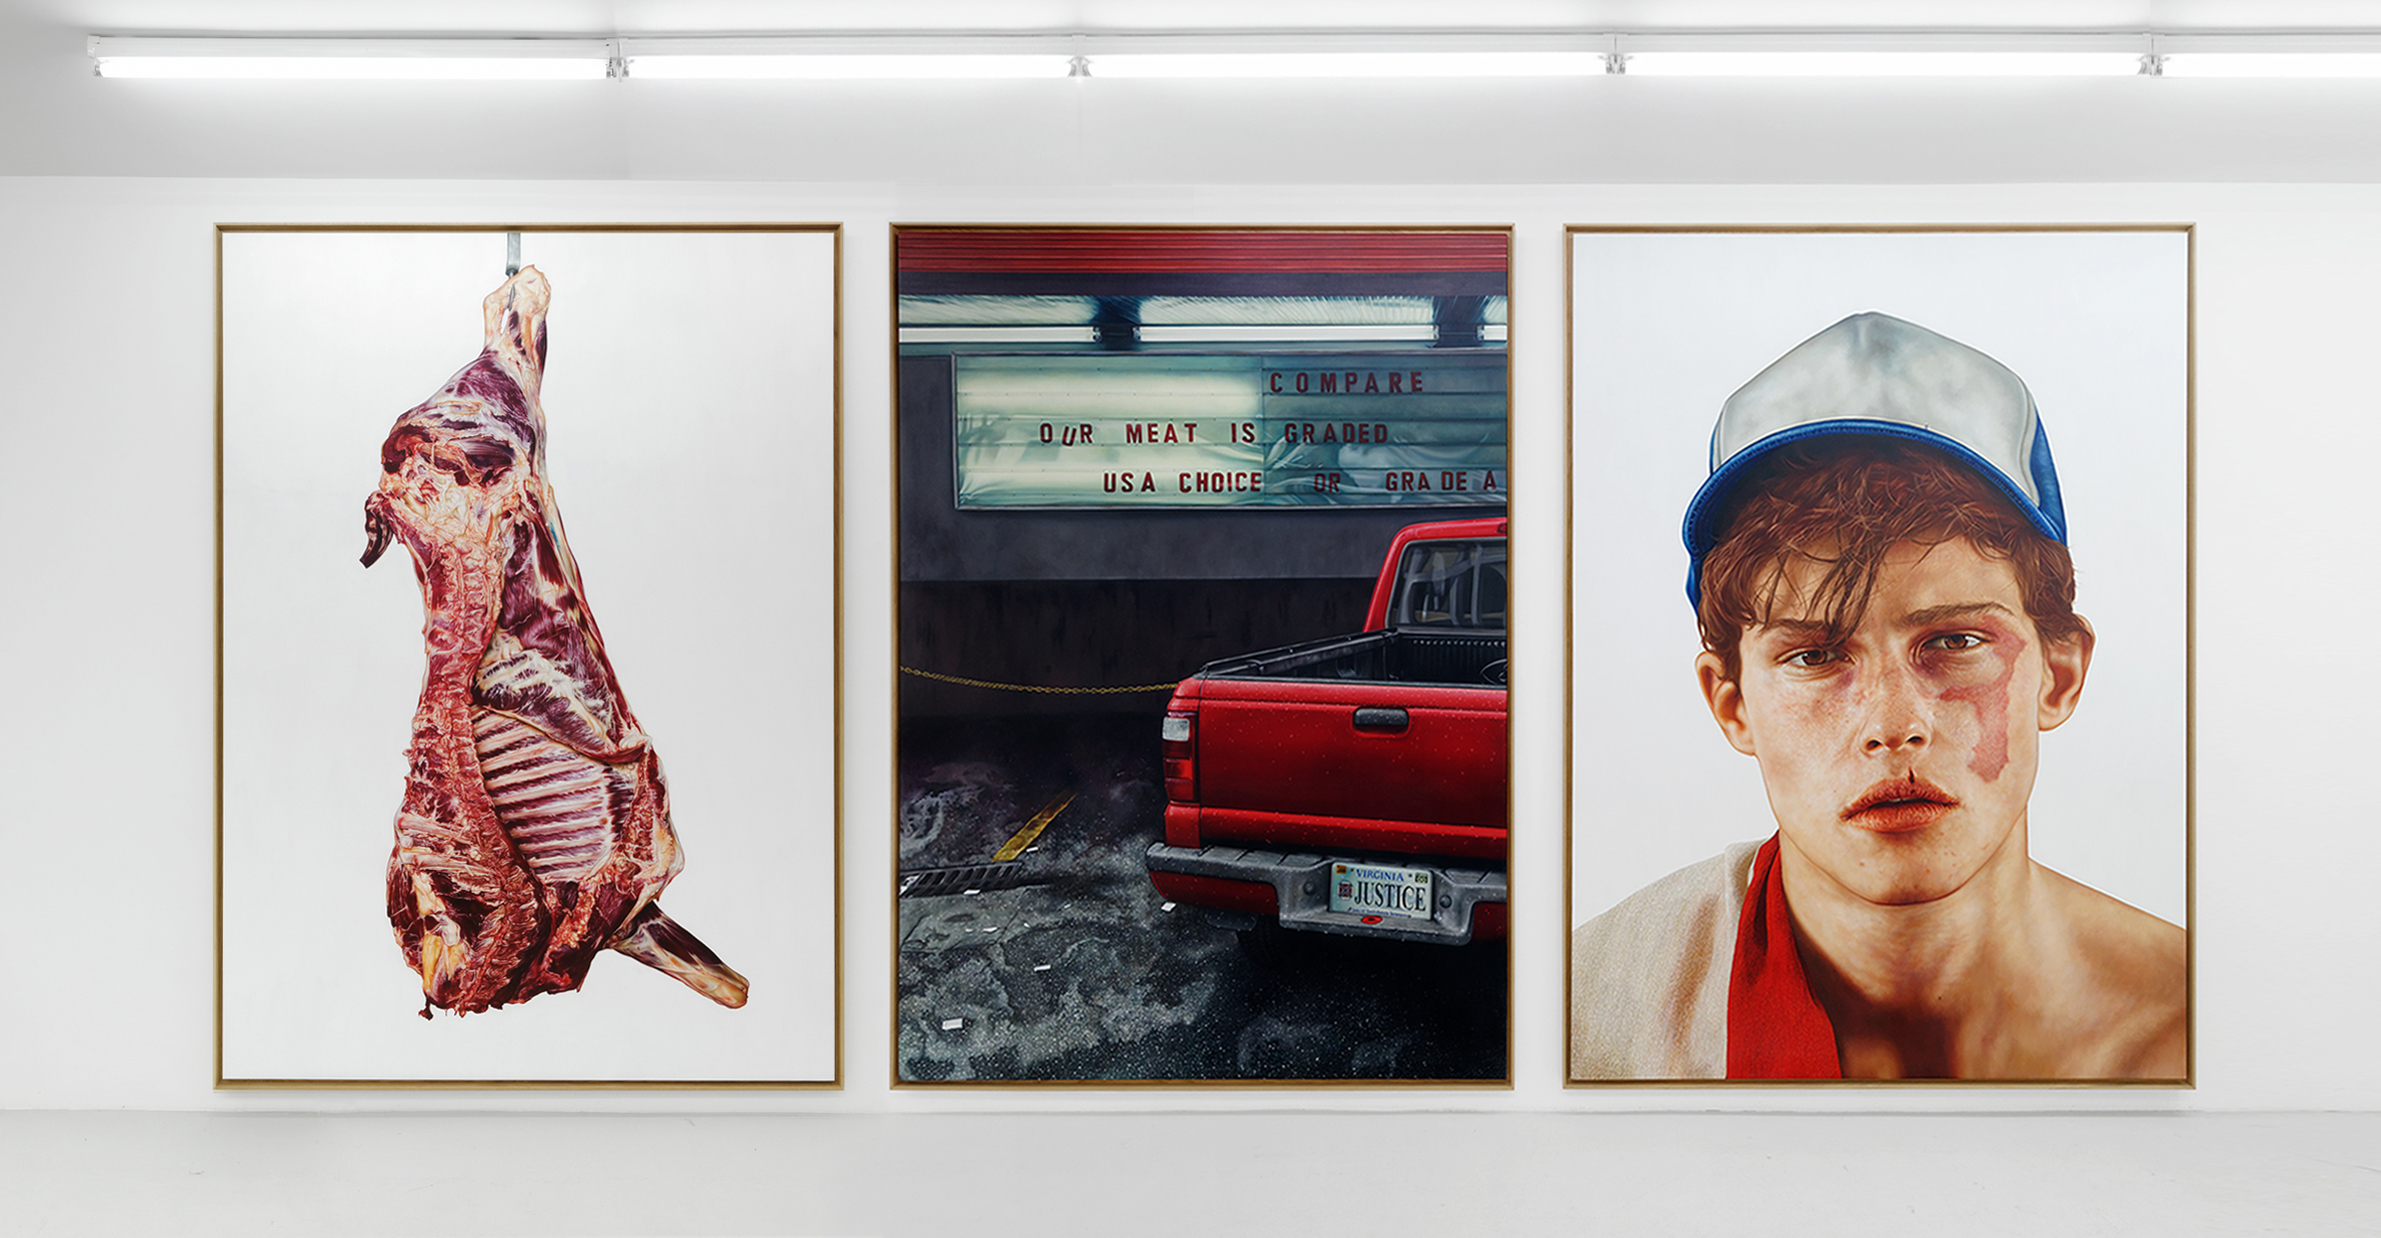 Our Meat Is USA Choice  - Triptych - THE KID - 2019 - Oil and egg tempera on canvas - 275 x 600 cm. / 108 x 236 in. - Private collection, USA - ©THE KID / All rights reserved